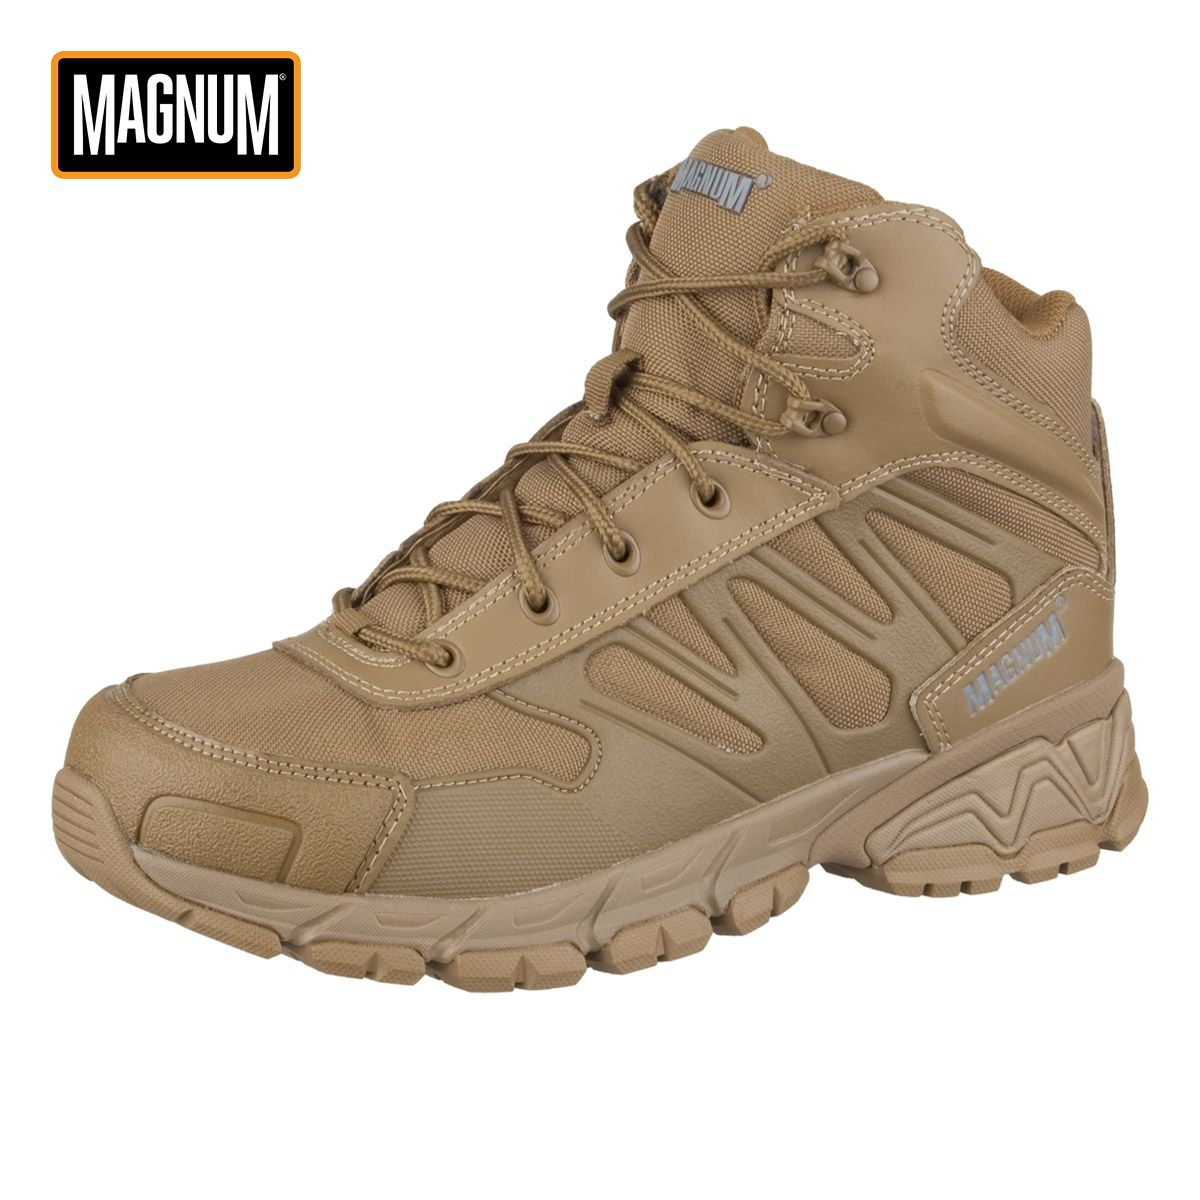 Closed toe medical walking shoe foot protection boot - These Robust And Comfortable Magnum Uniforce 6 0 Boots In Coyote Colour Feature Action Leather And Mesh